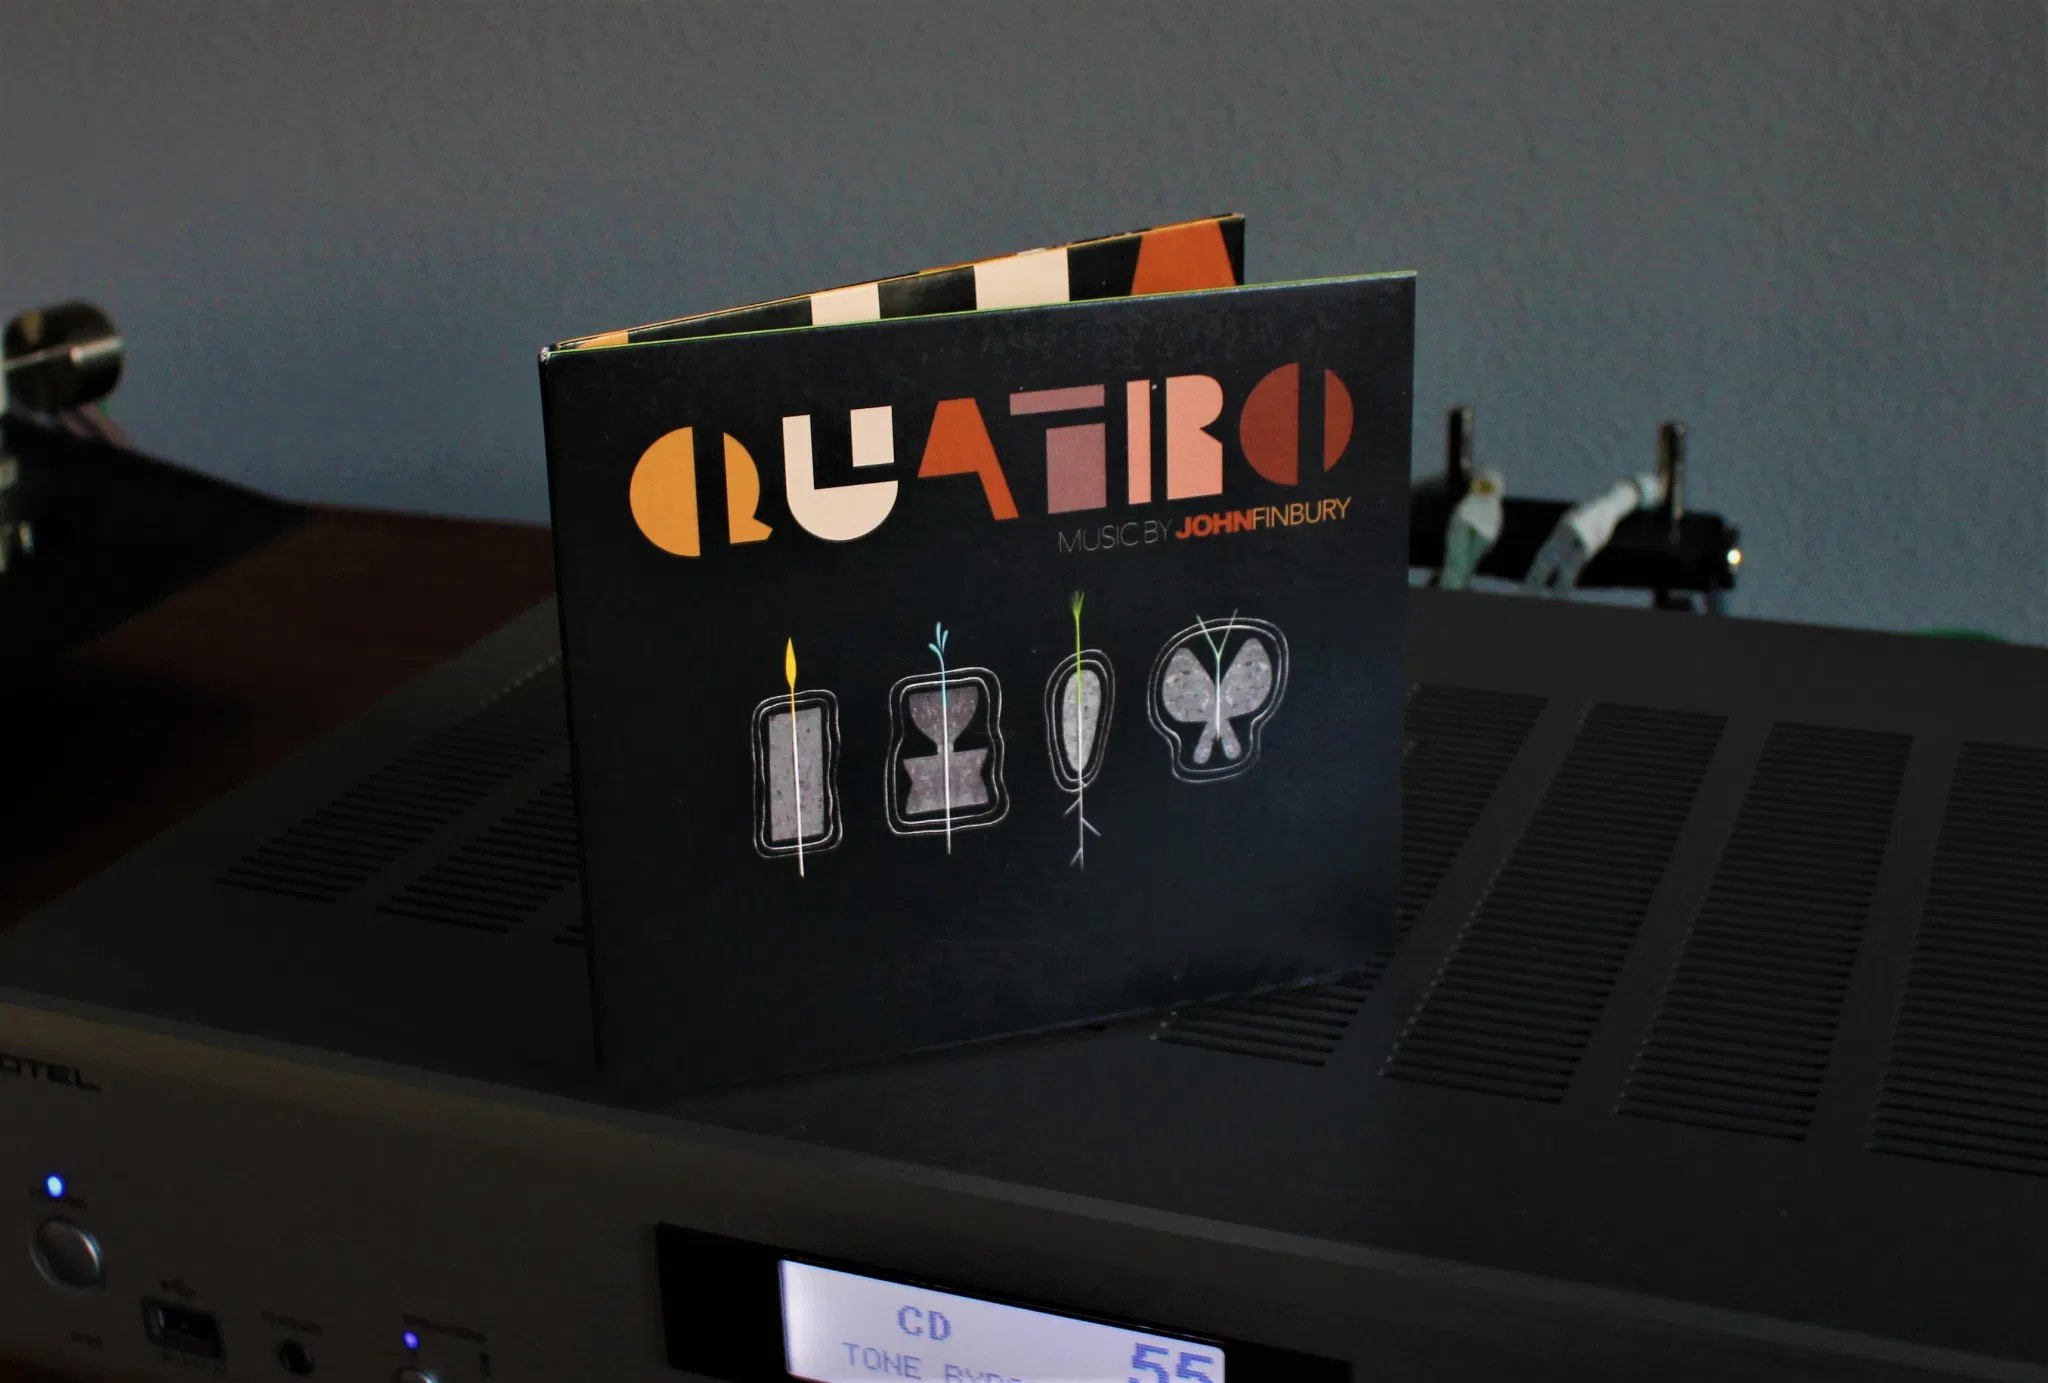 John Finbury, Quatro | The Vinyl Anachronist By Part-Time Audiophile